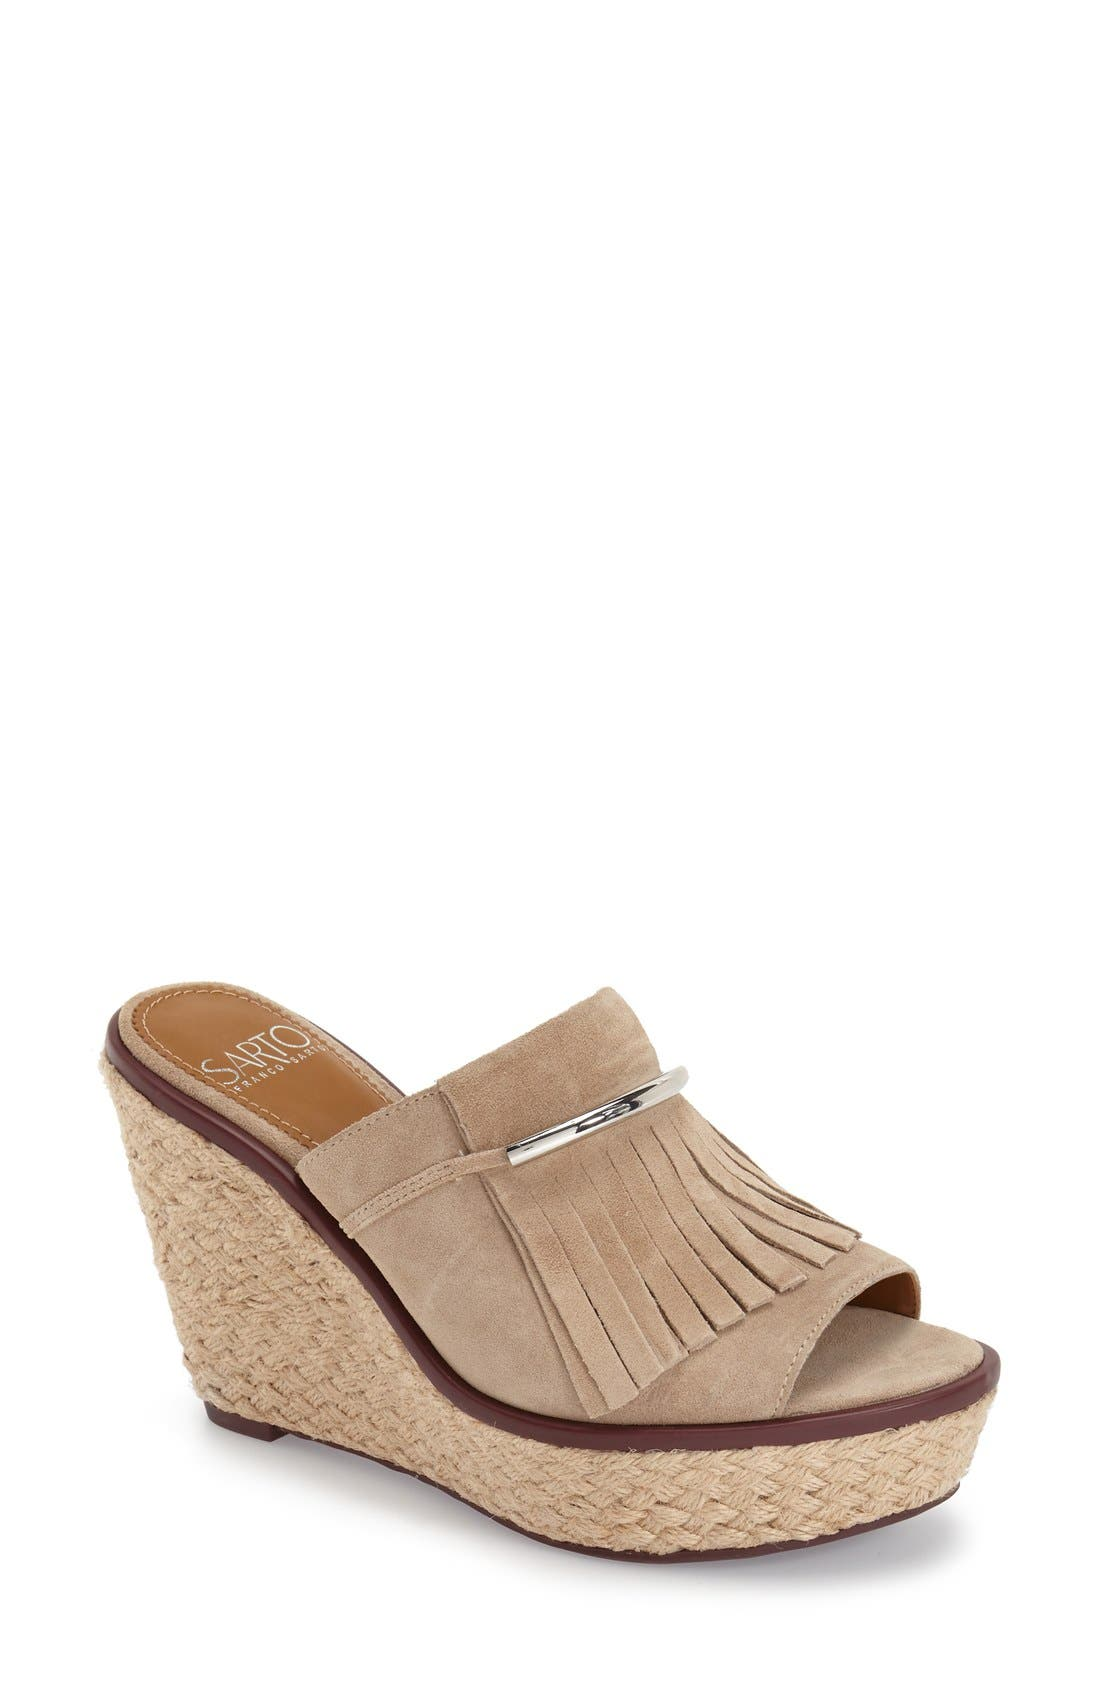 'Candace' Wedge Mule,                             Main thumbnail 1, color,                             Soft Tan Kid Suede